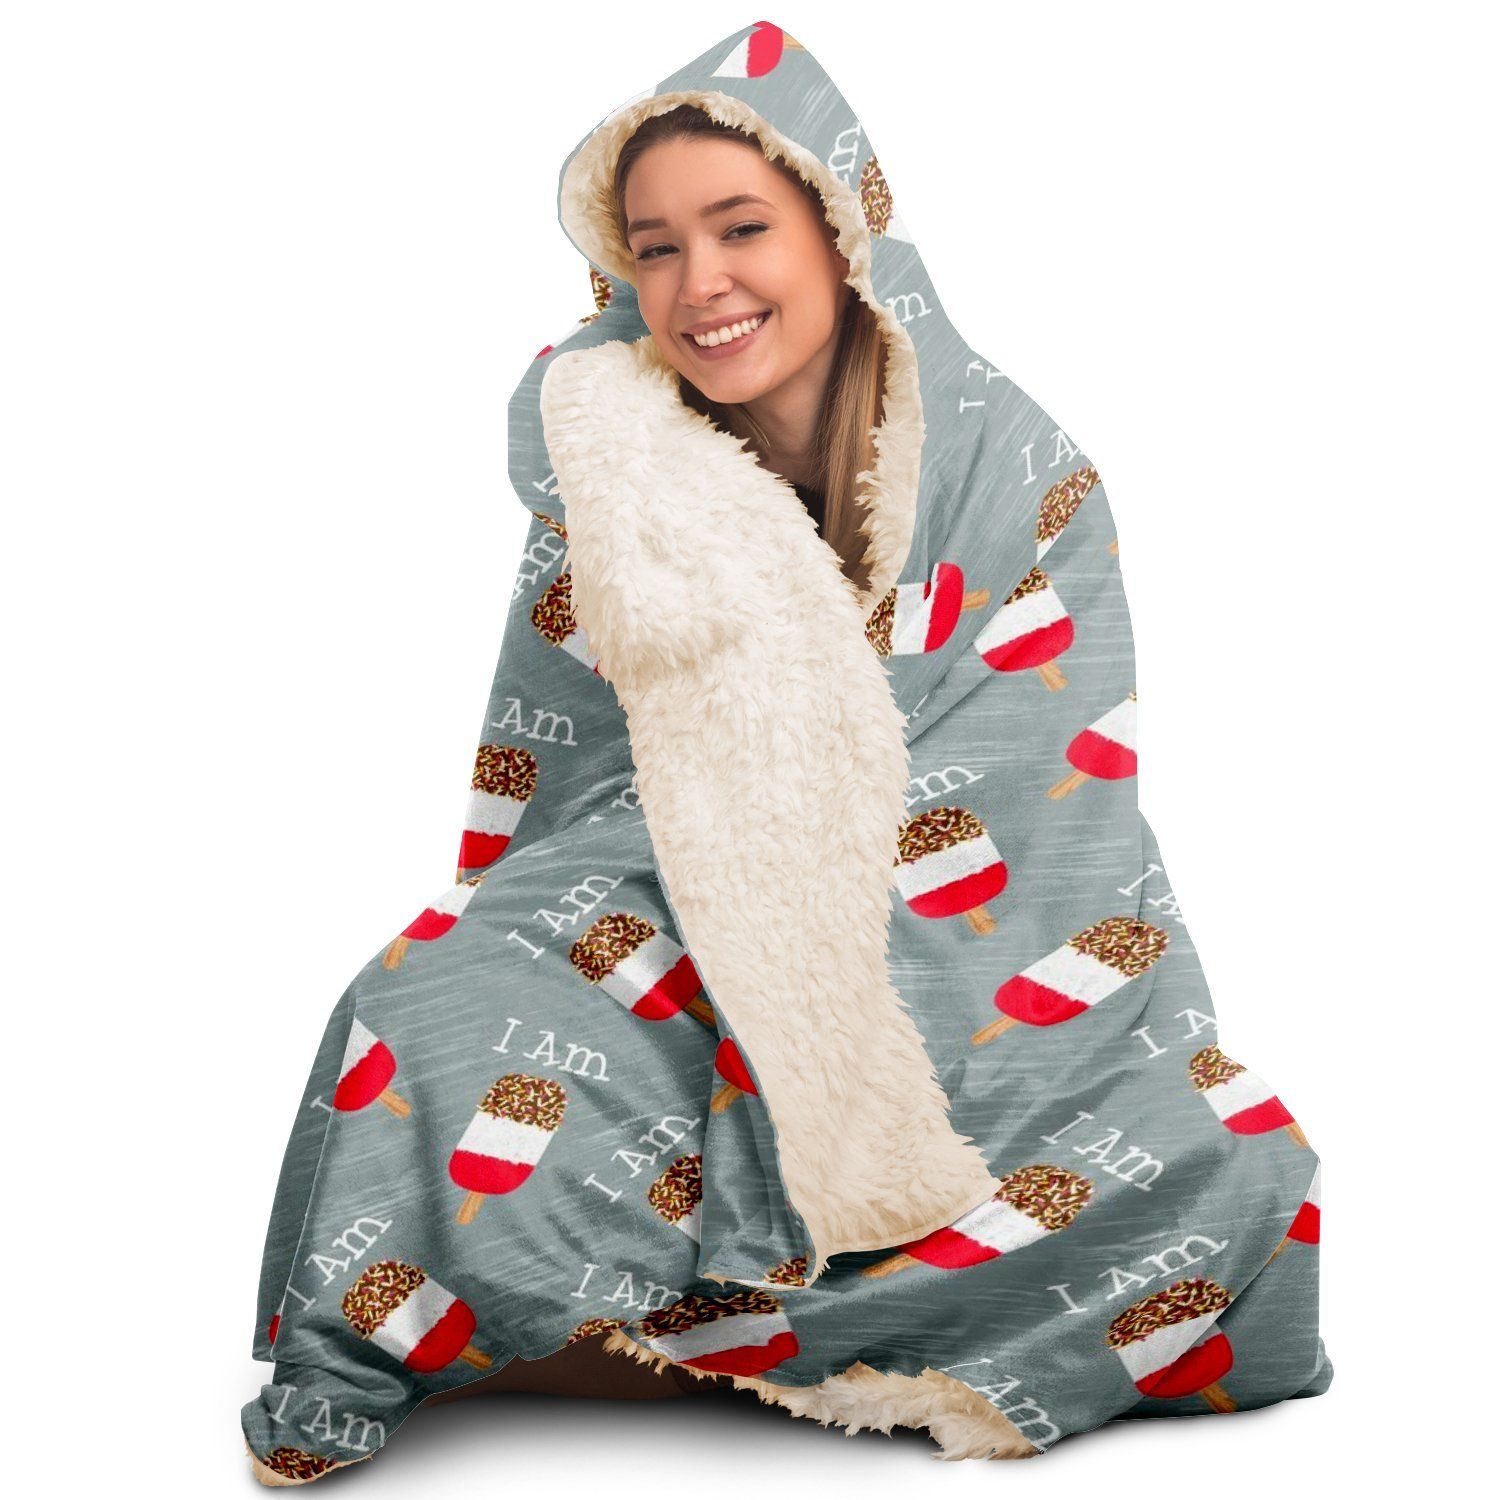 I am Fab - Hooded Blanket - Fair Dinkum Fashion